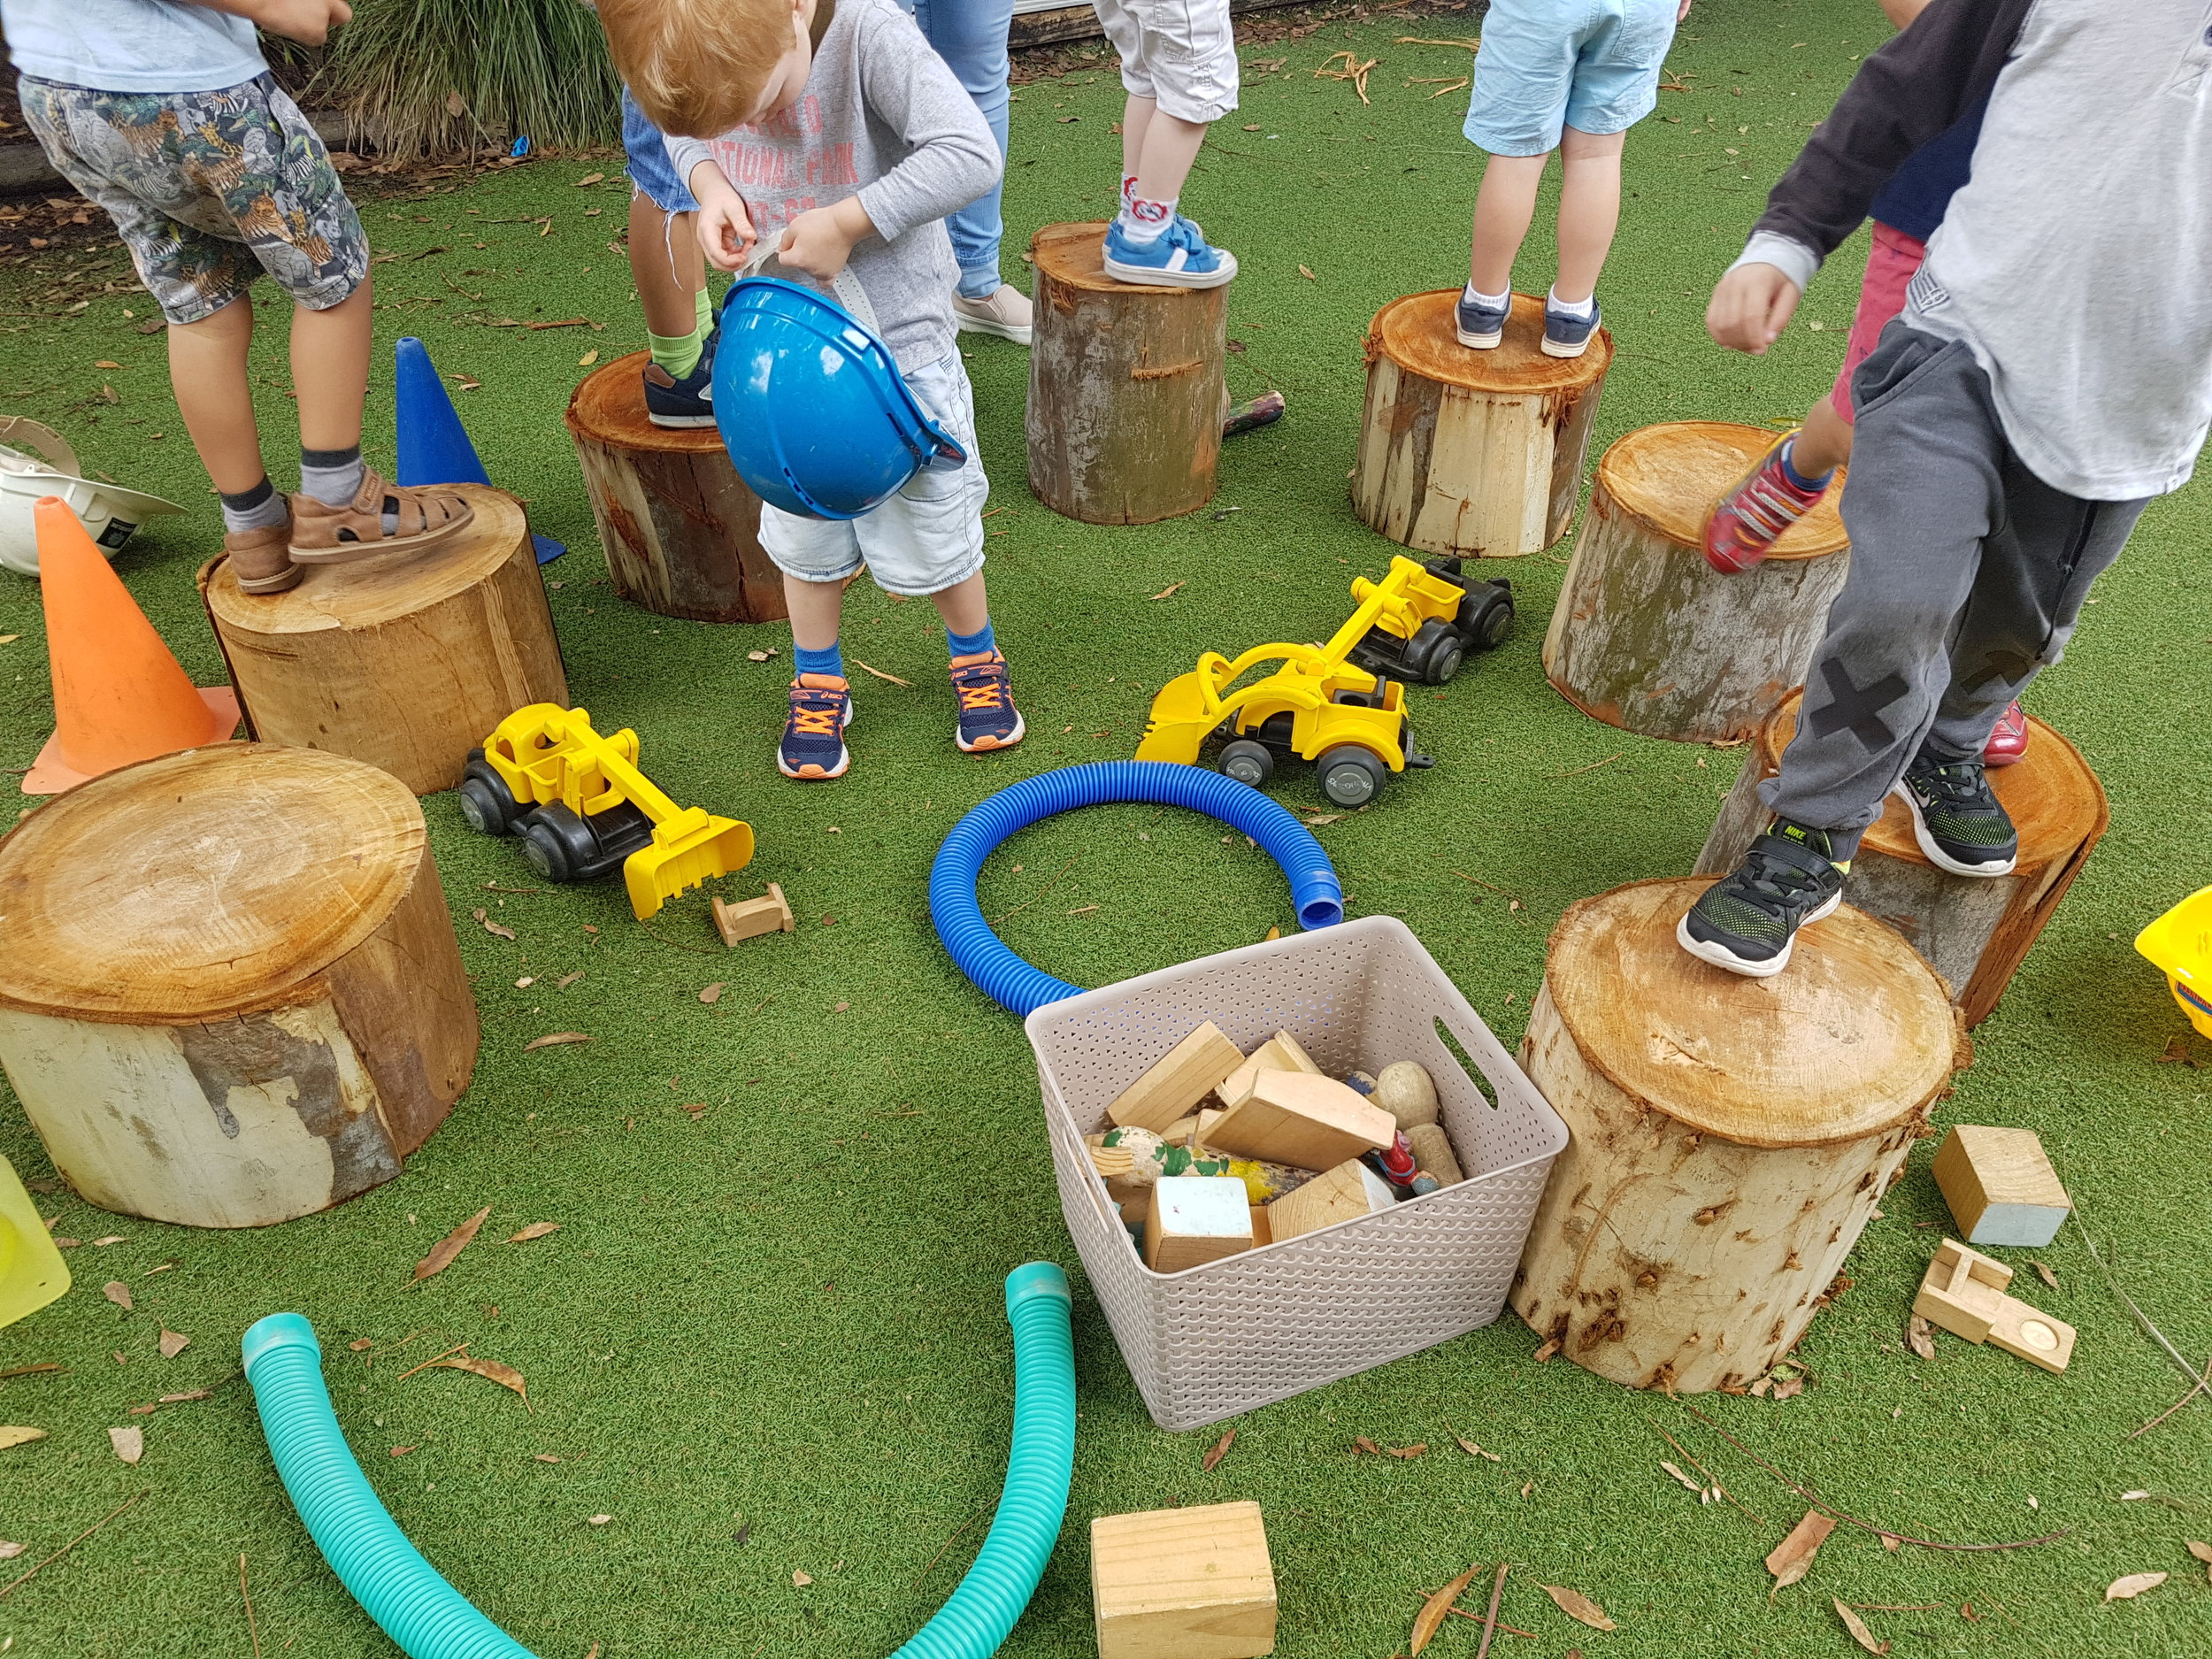 Outdoor learning environments - Log obstacle course Feb 2017.jpg